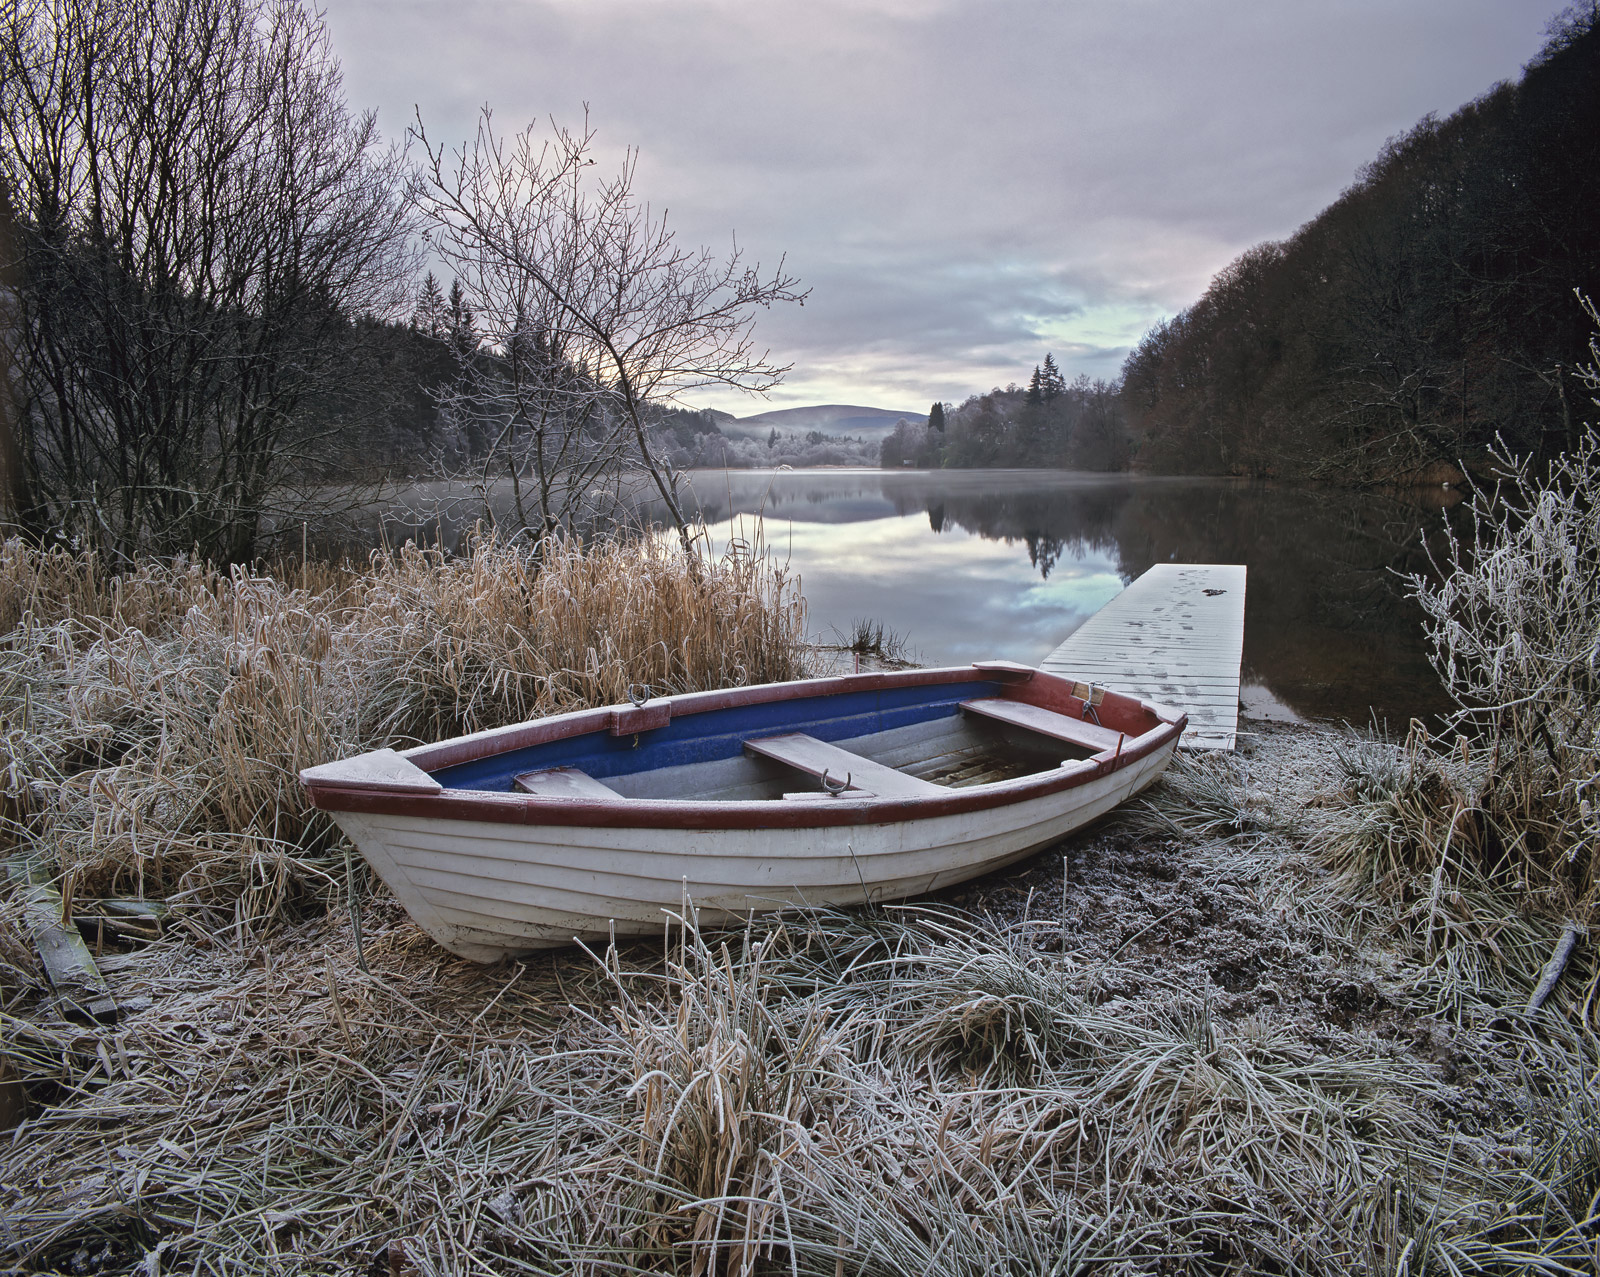 A fishing boat hauled out of the water at loch Ard in the depths of winter. It was immensely cold with a crisp frost covering...